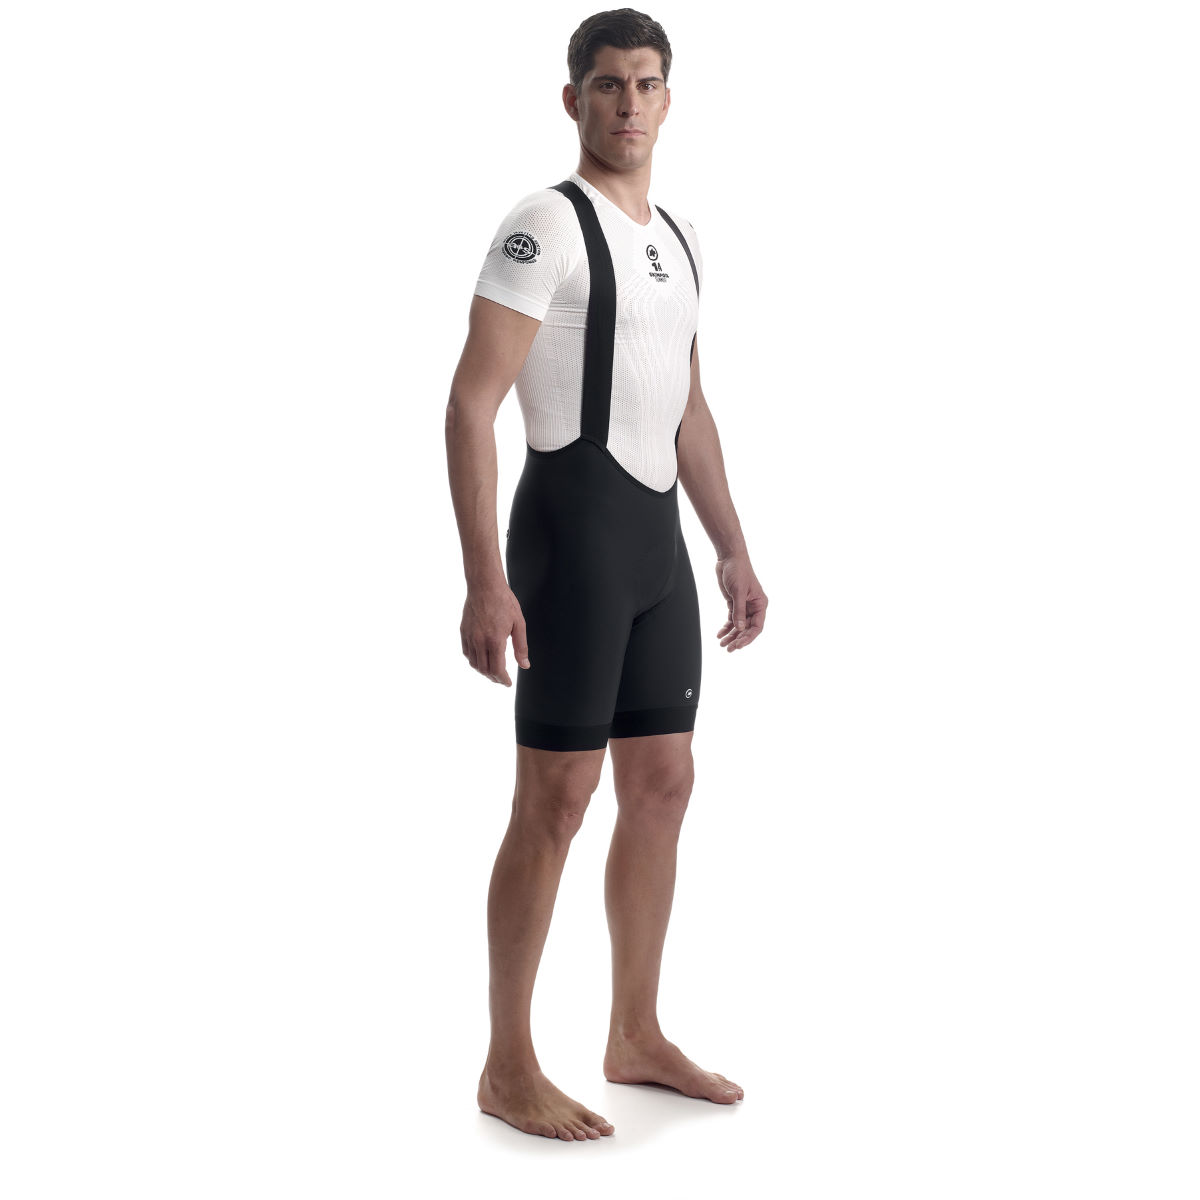 Assos T.mille_S7 Bib Shorts   Lycra Cycling Shorts